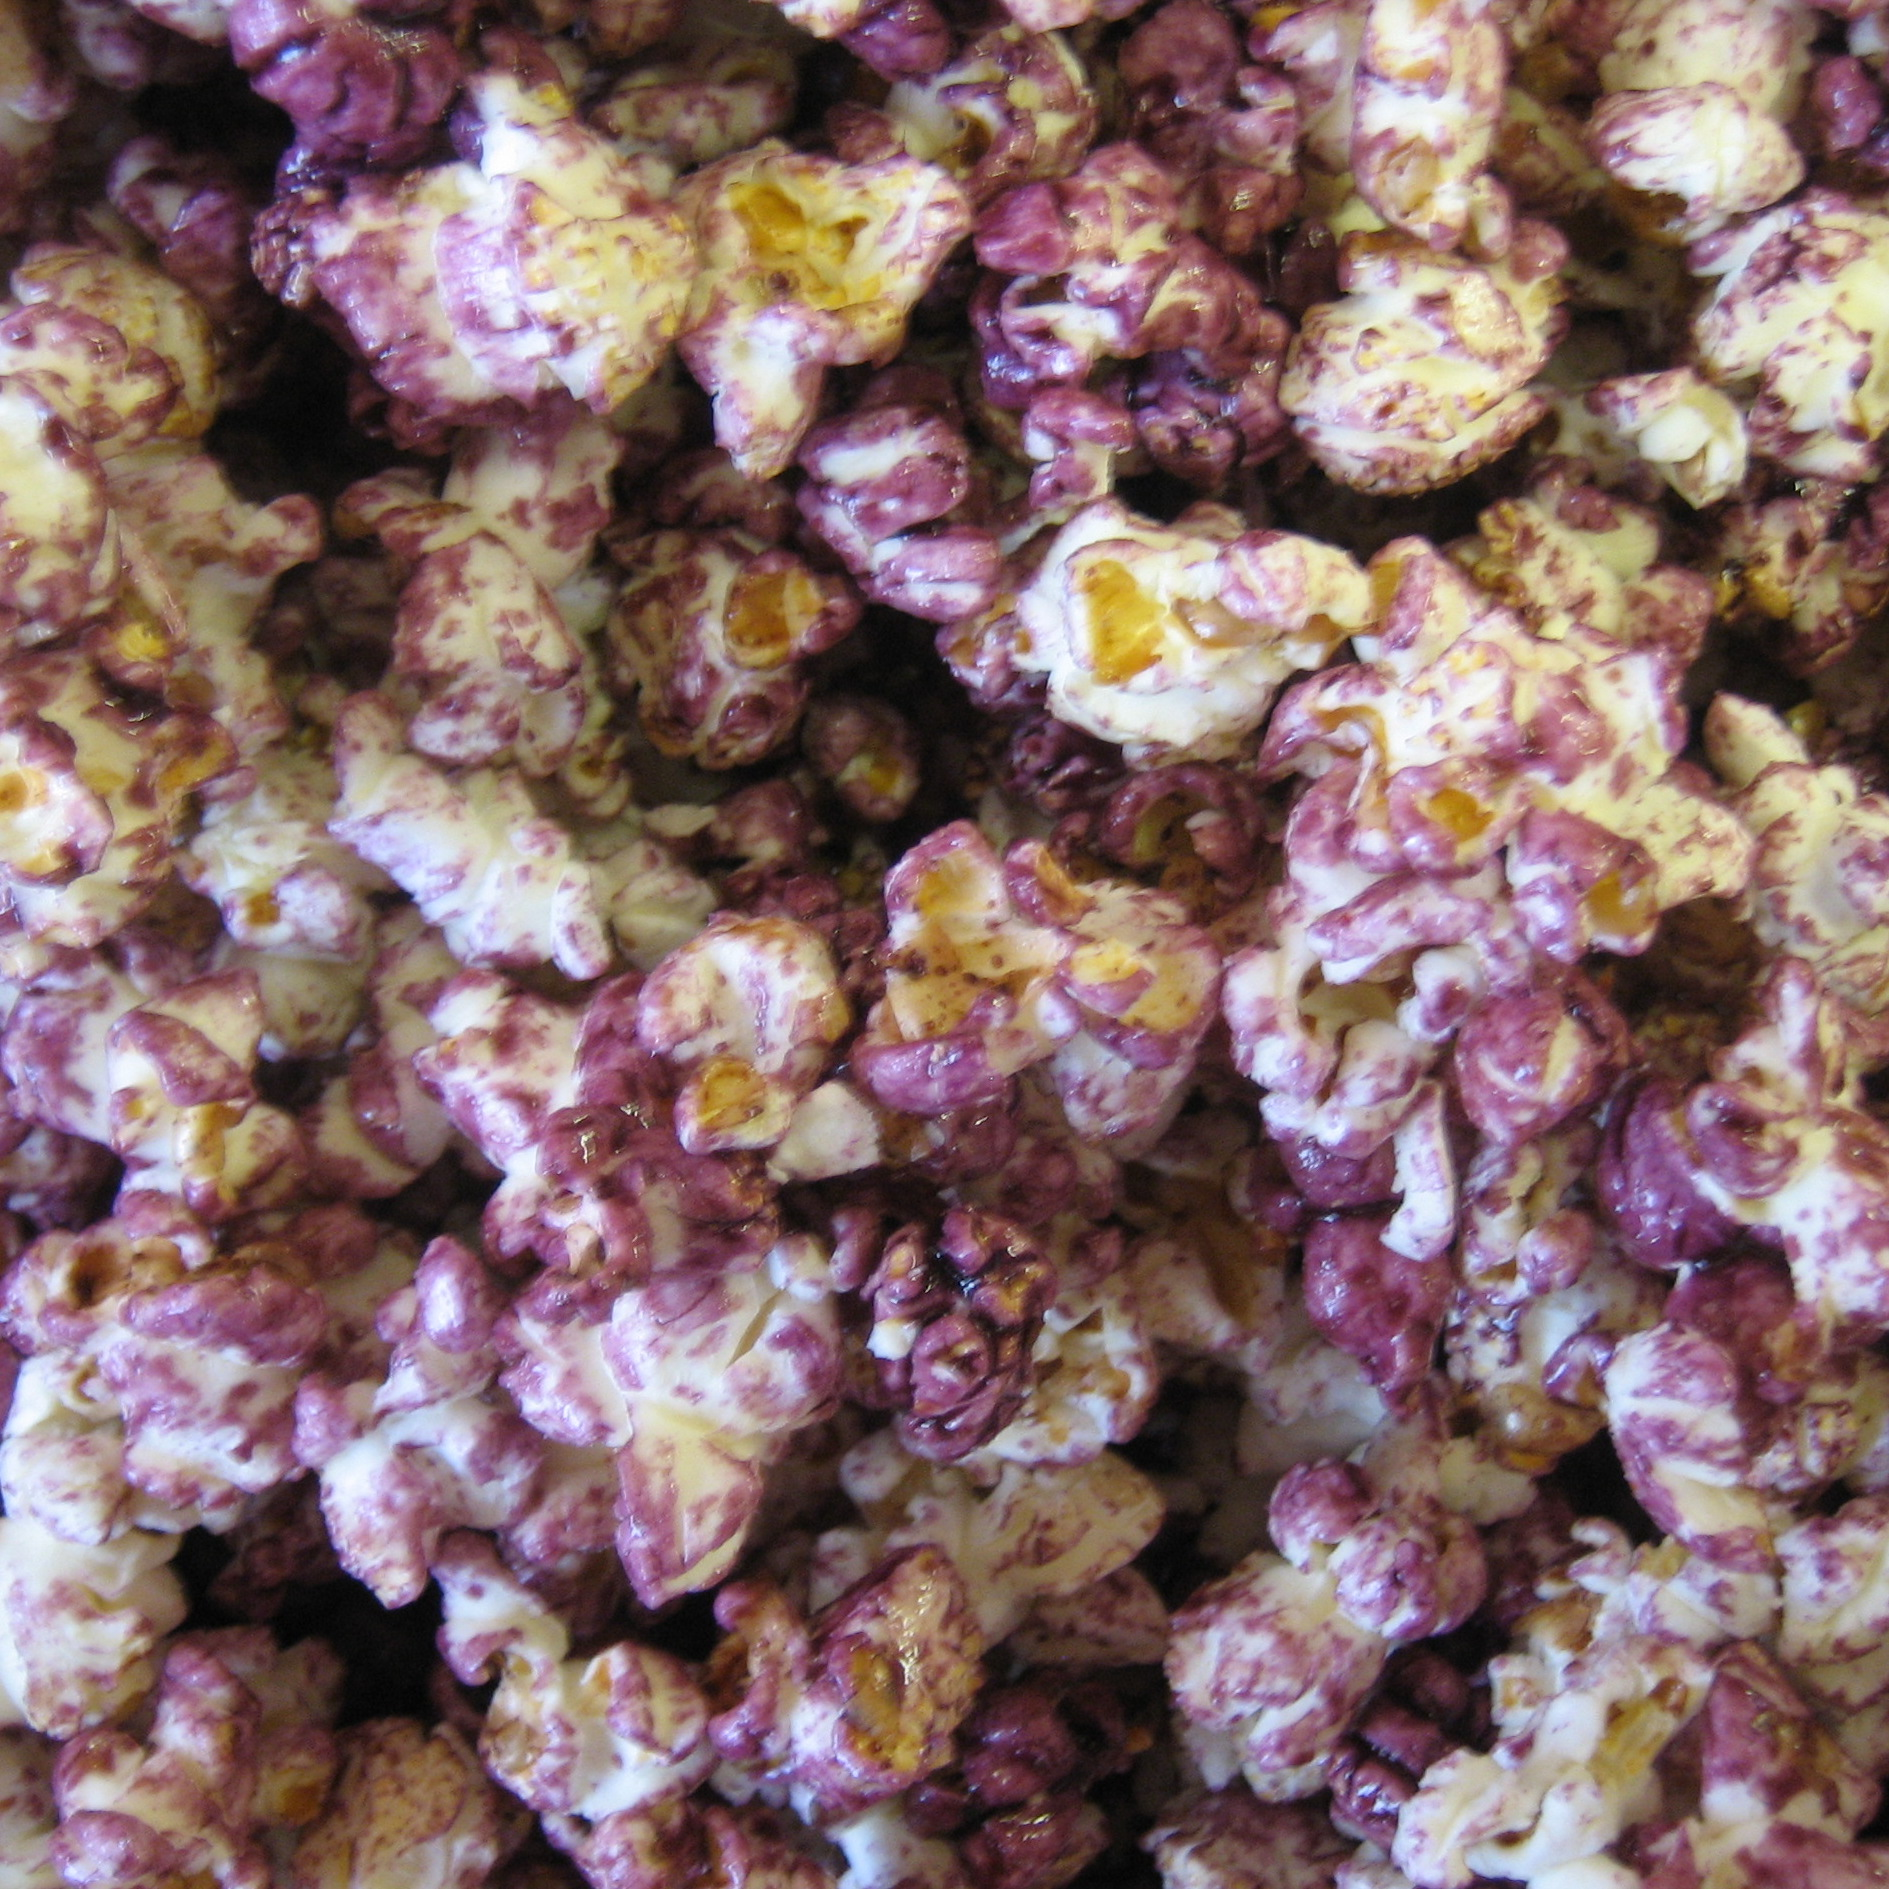 purple kettle corn